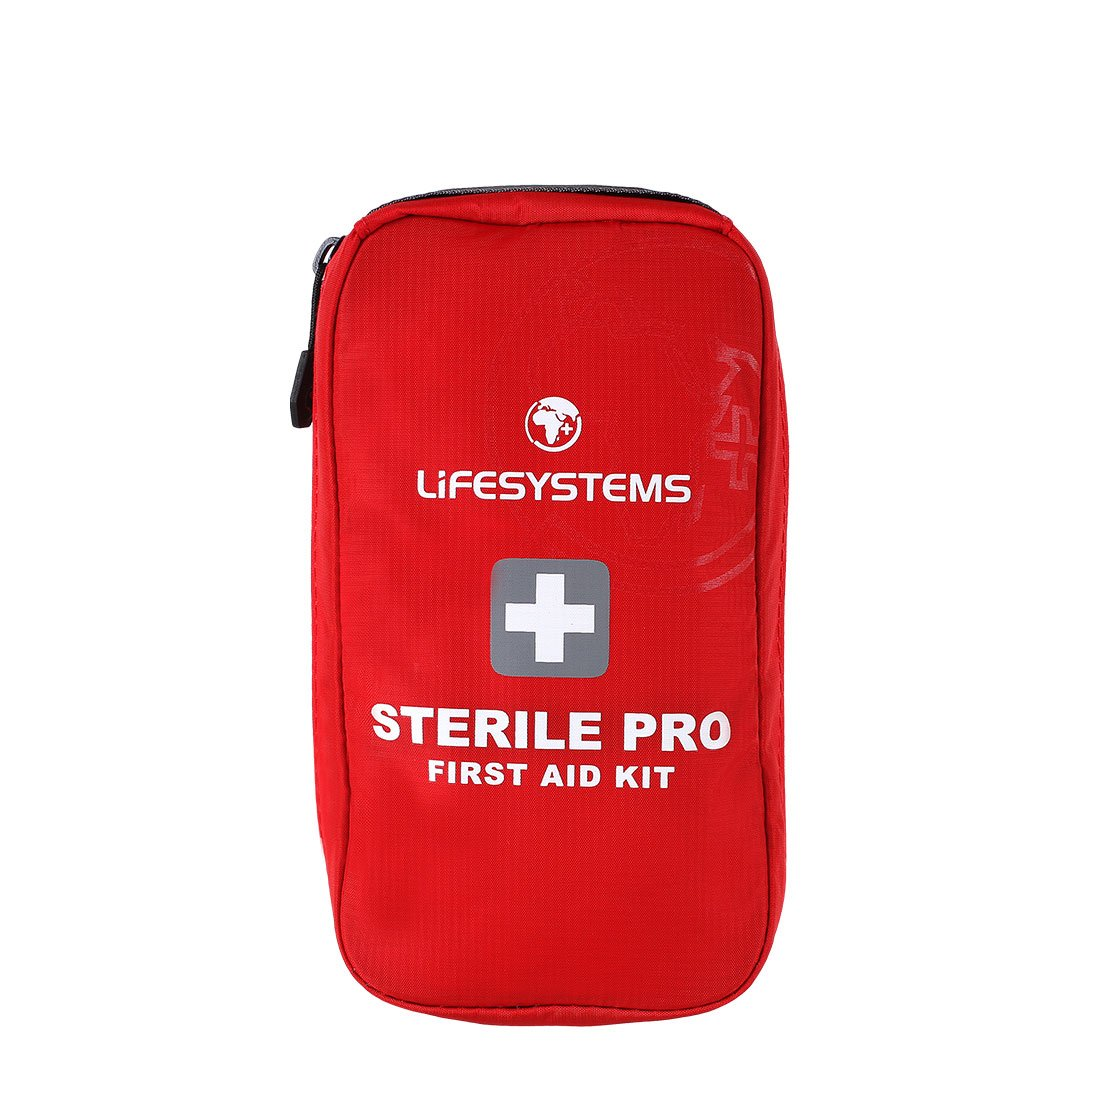 Sterile Pro First Aid Kit Travel First Aid Kit Lifesystems